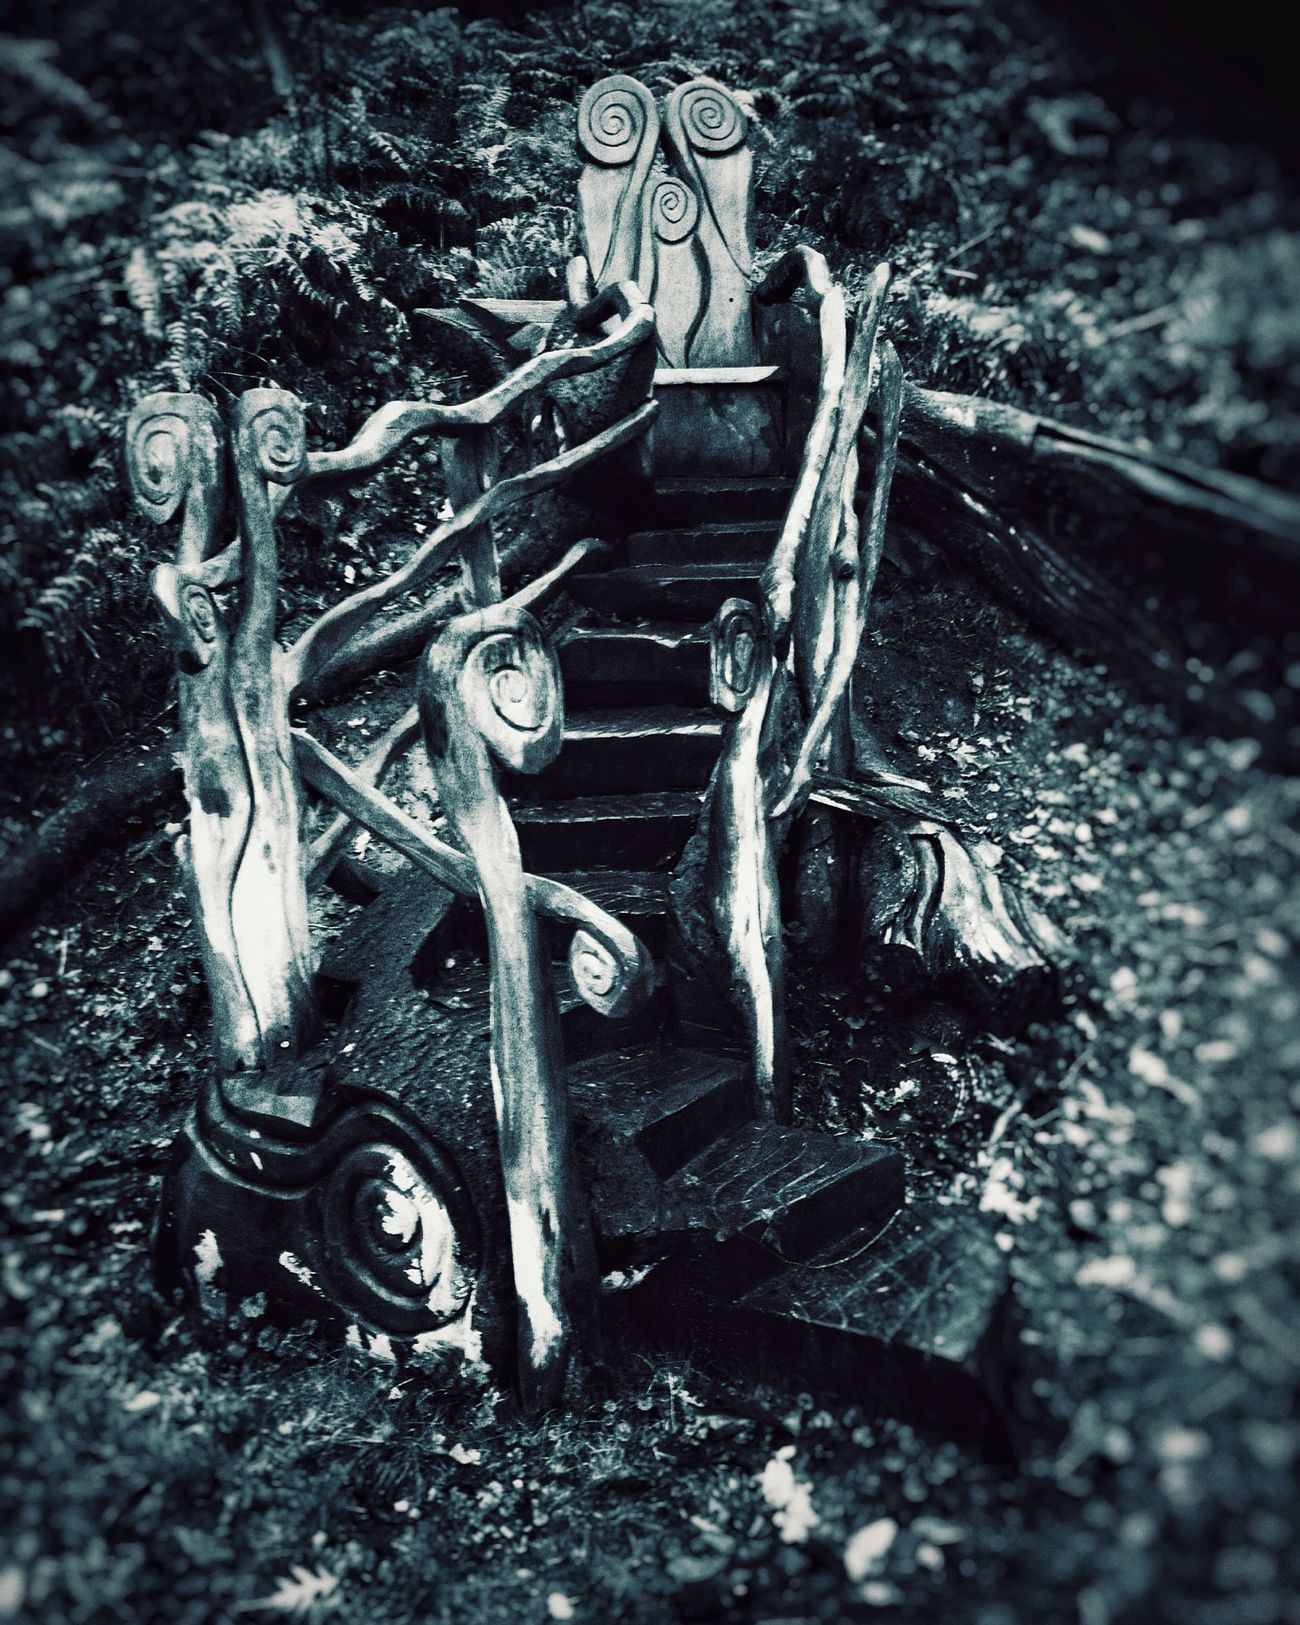 Wooden seat made by the staff at my local arboretum Sculpture Wooden Seat Duotone Surrey Nationaltrust